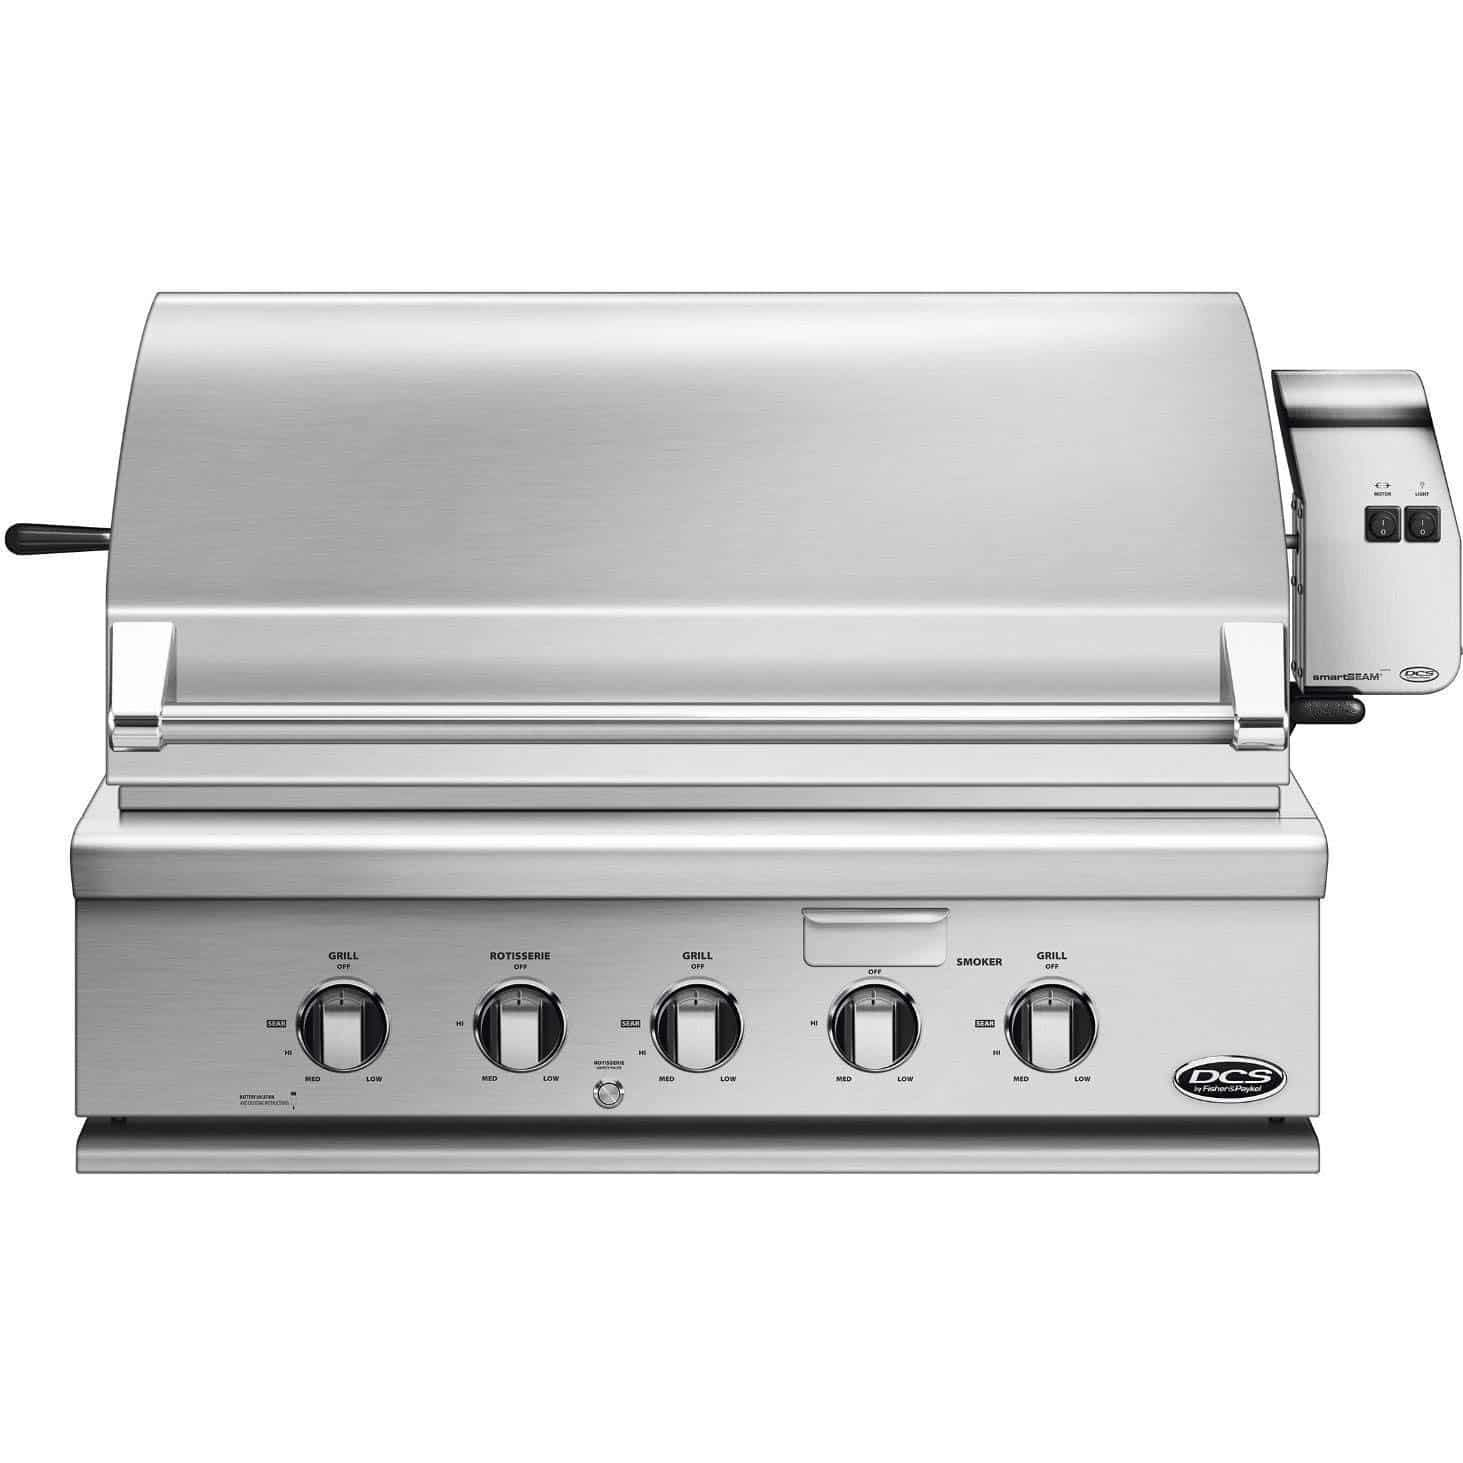 Pin By The Grilling Life On My Personal Reviews Gas Grill Reviews Natural Gas Grill Gas Grill